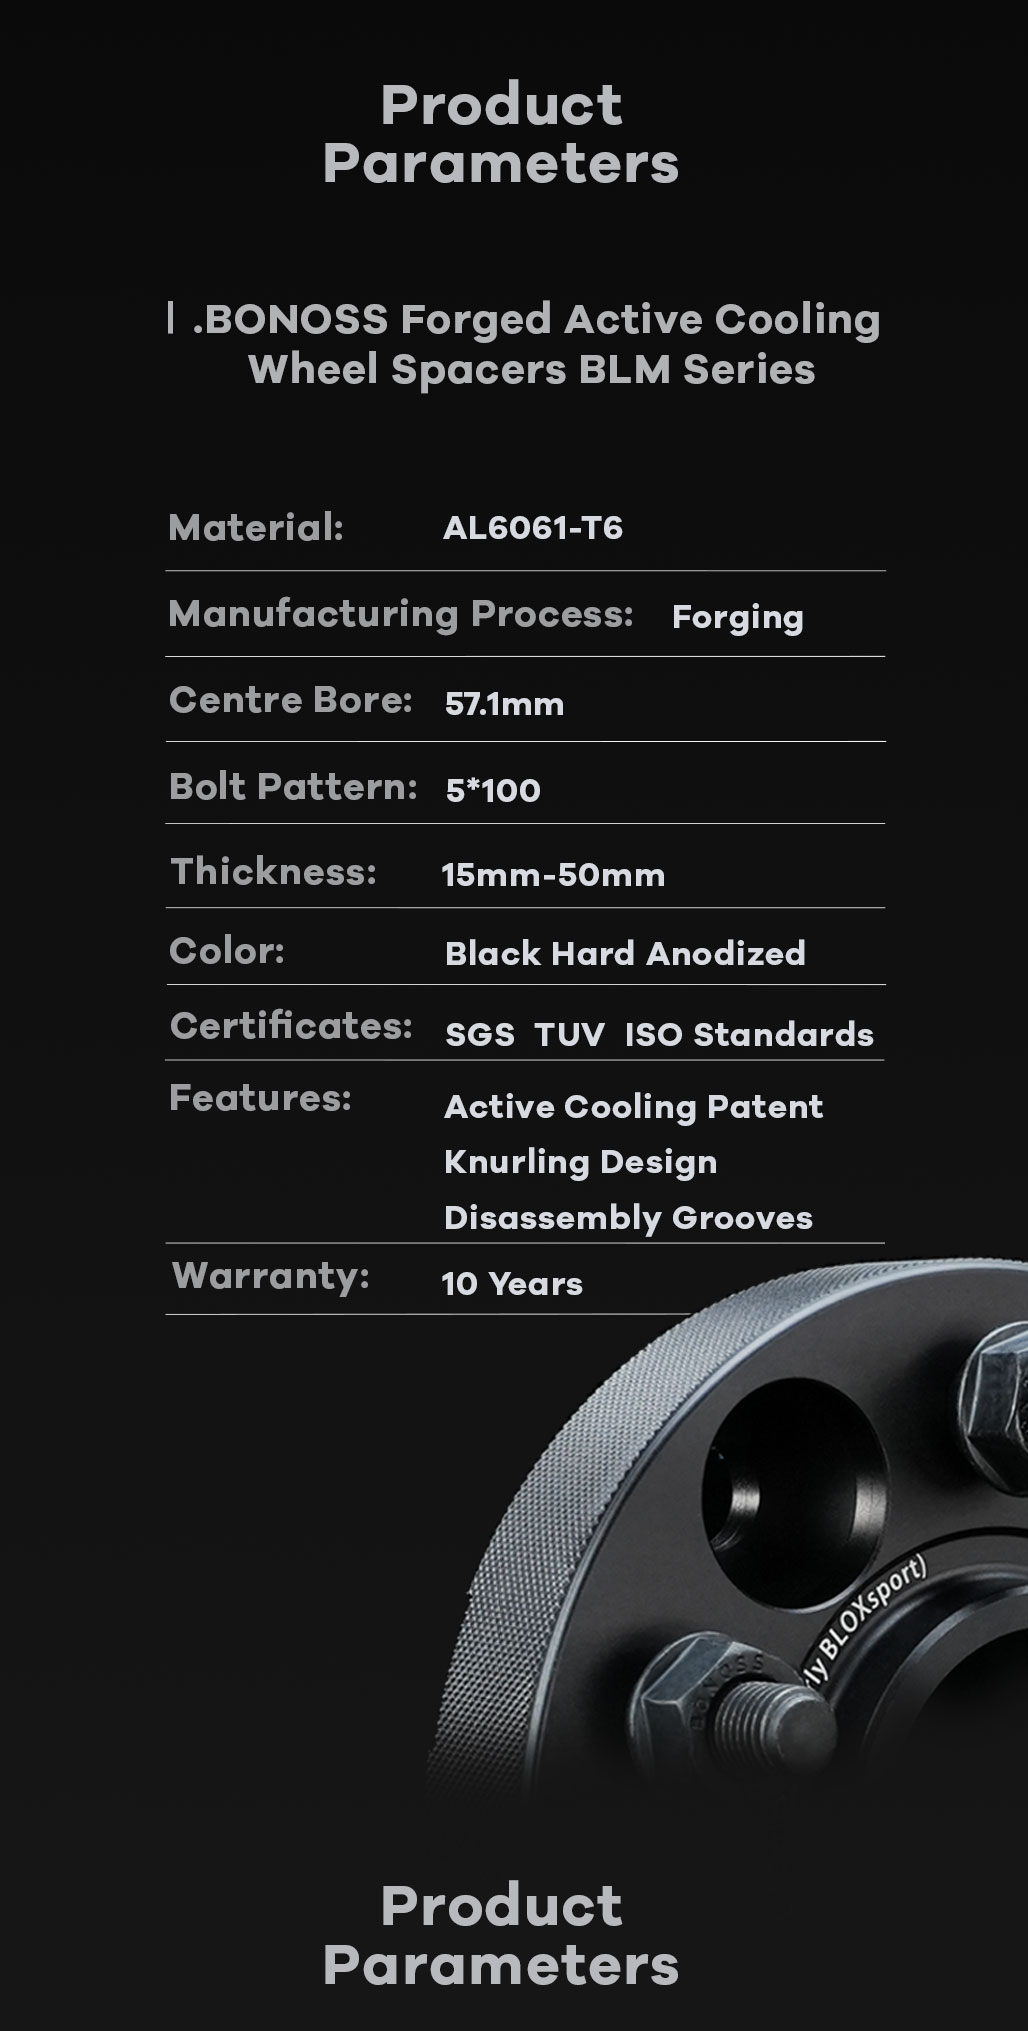 BONOSS Forged Active Cooling Hubcentric Wheel Spacers 5x100 Wheel Adapters Wheel ET Spacers Car Wheel Spacer AL6061-T6